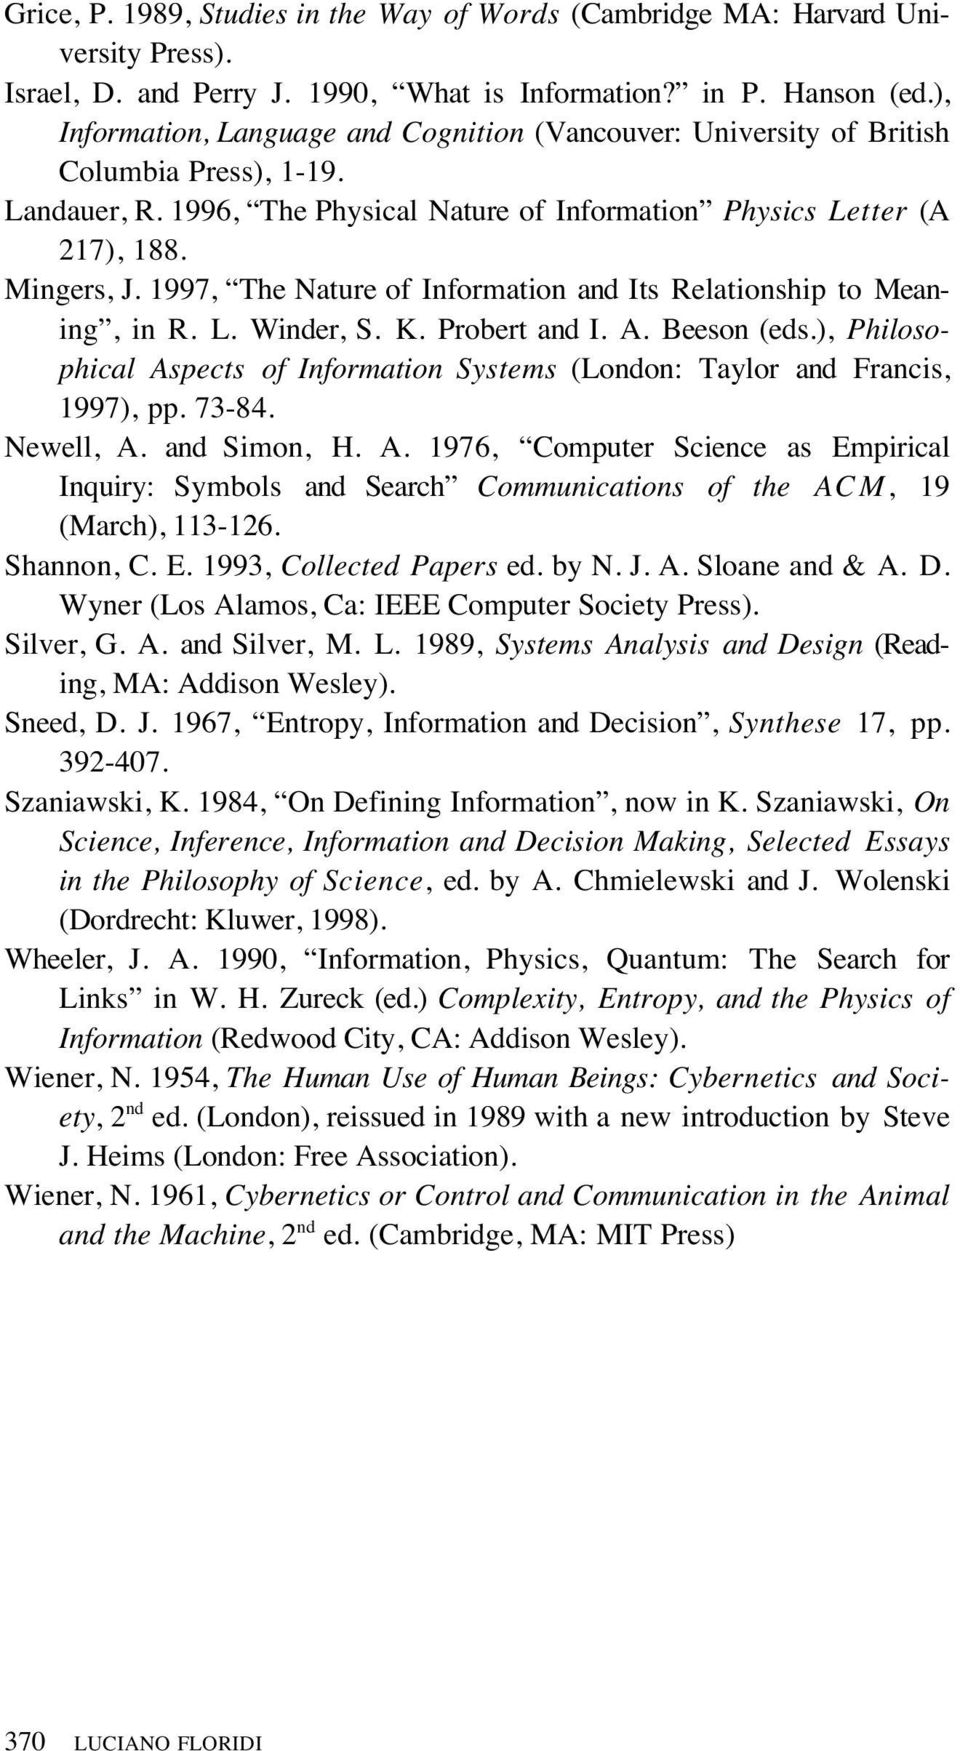 1997, The Nature of Information and Its Relationship to Meaning, in R. L. Winder, S. K. Probert and I. A. Beeson (eds.